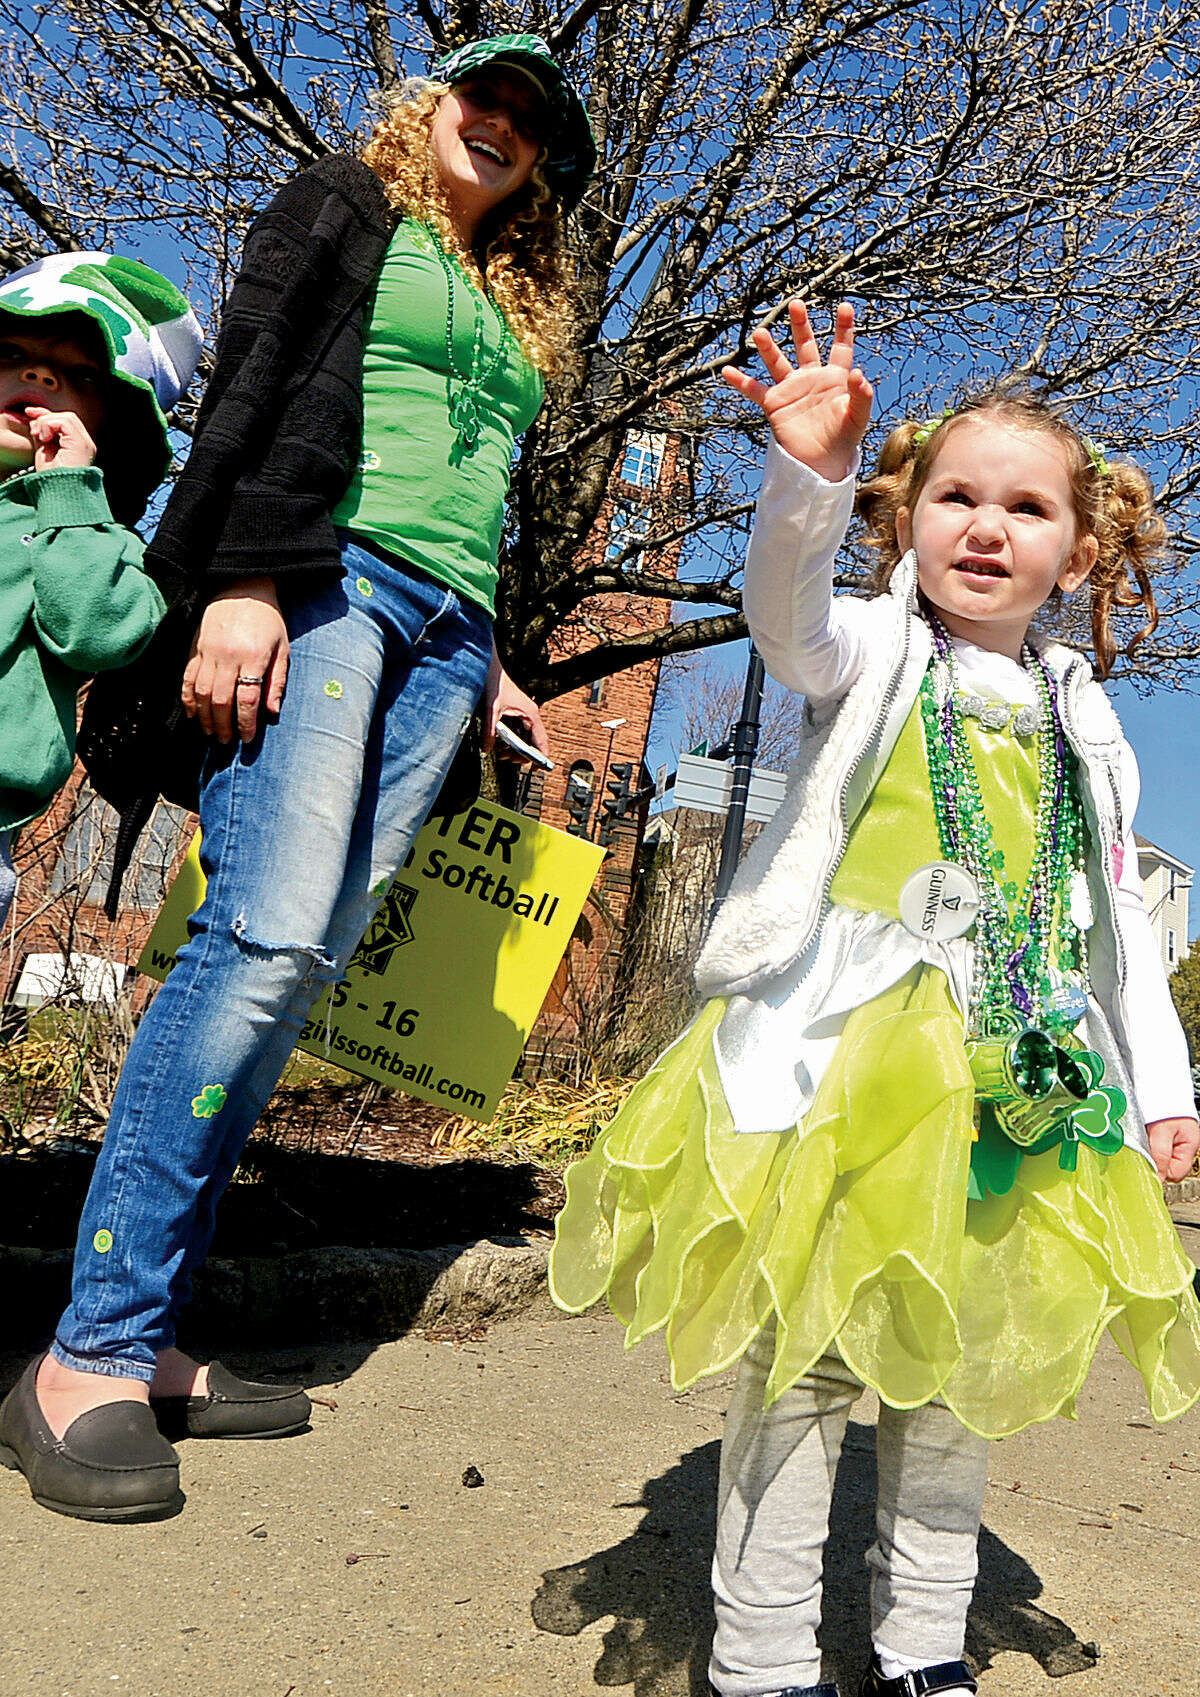 Hour photo / Erik Trautmann Norwalk residents including 2 year old Maya Cavell cheer on the first Norwalk St. Patrick's Day parade Thursday which made it's way down South and North Main Streets ending at O'Neill's Pub.